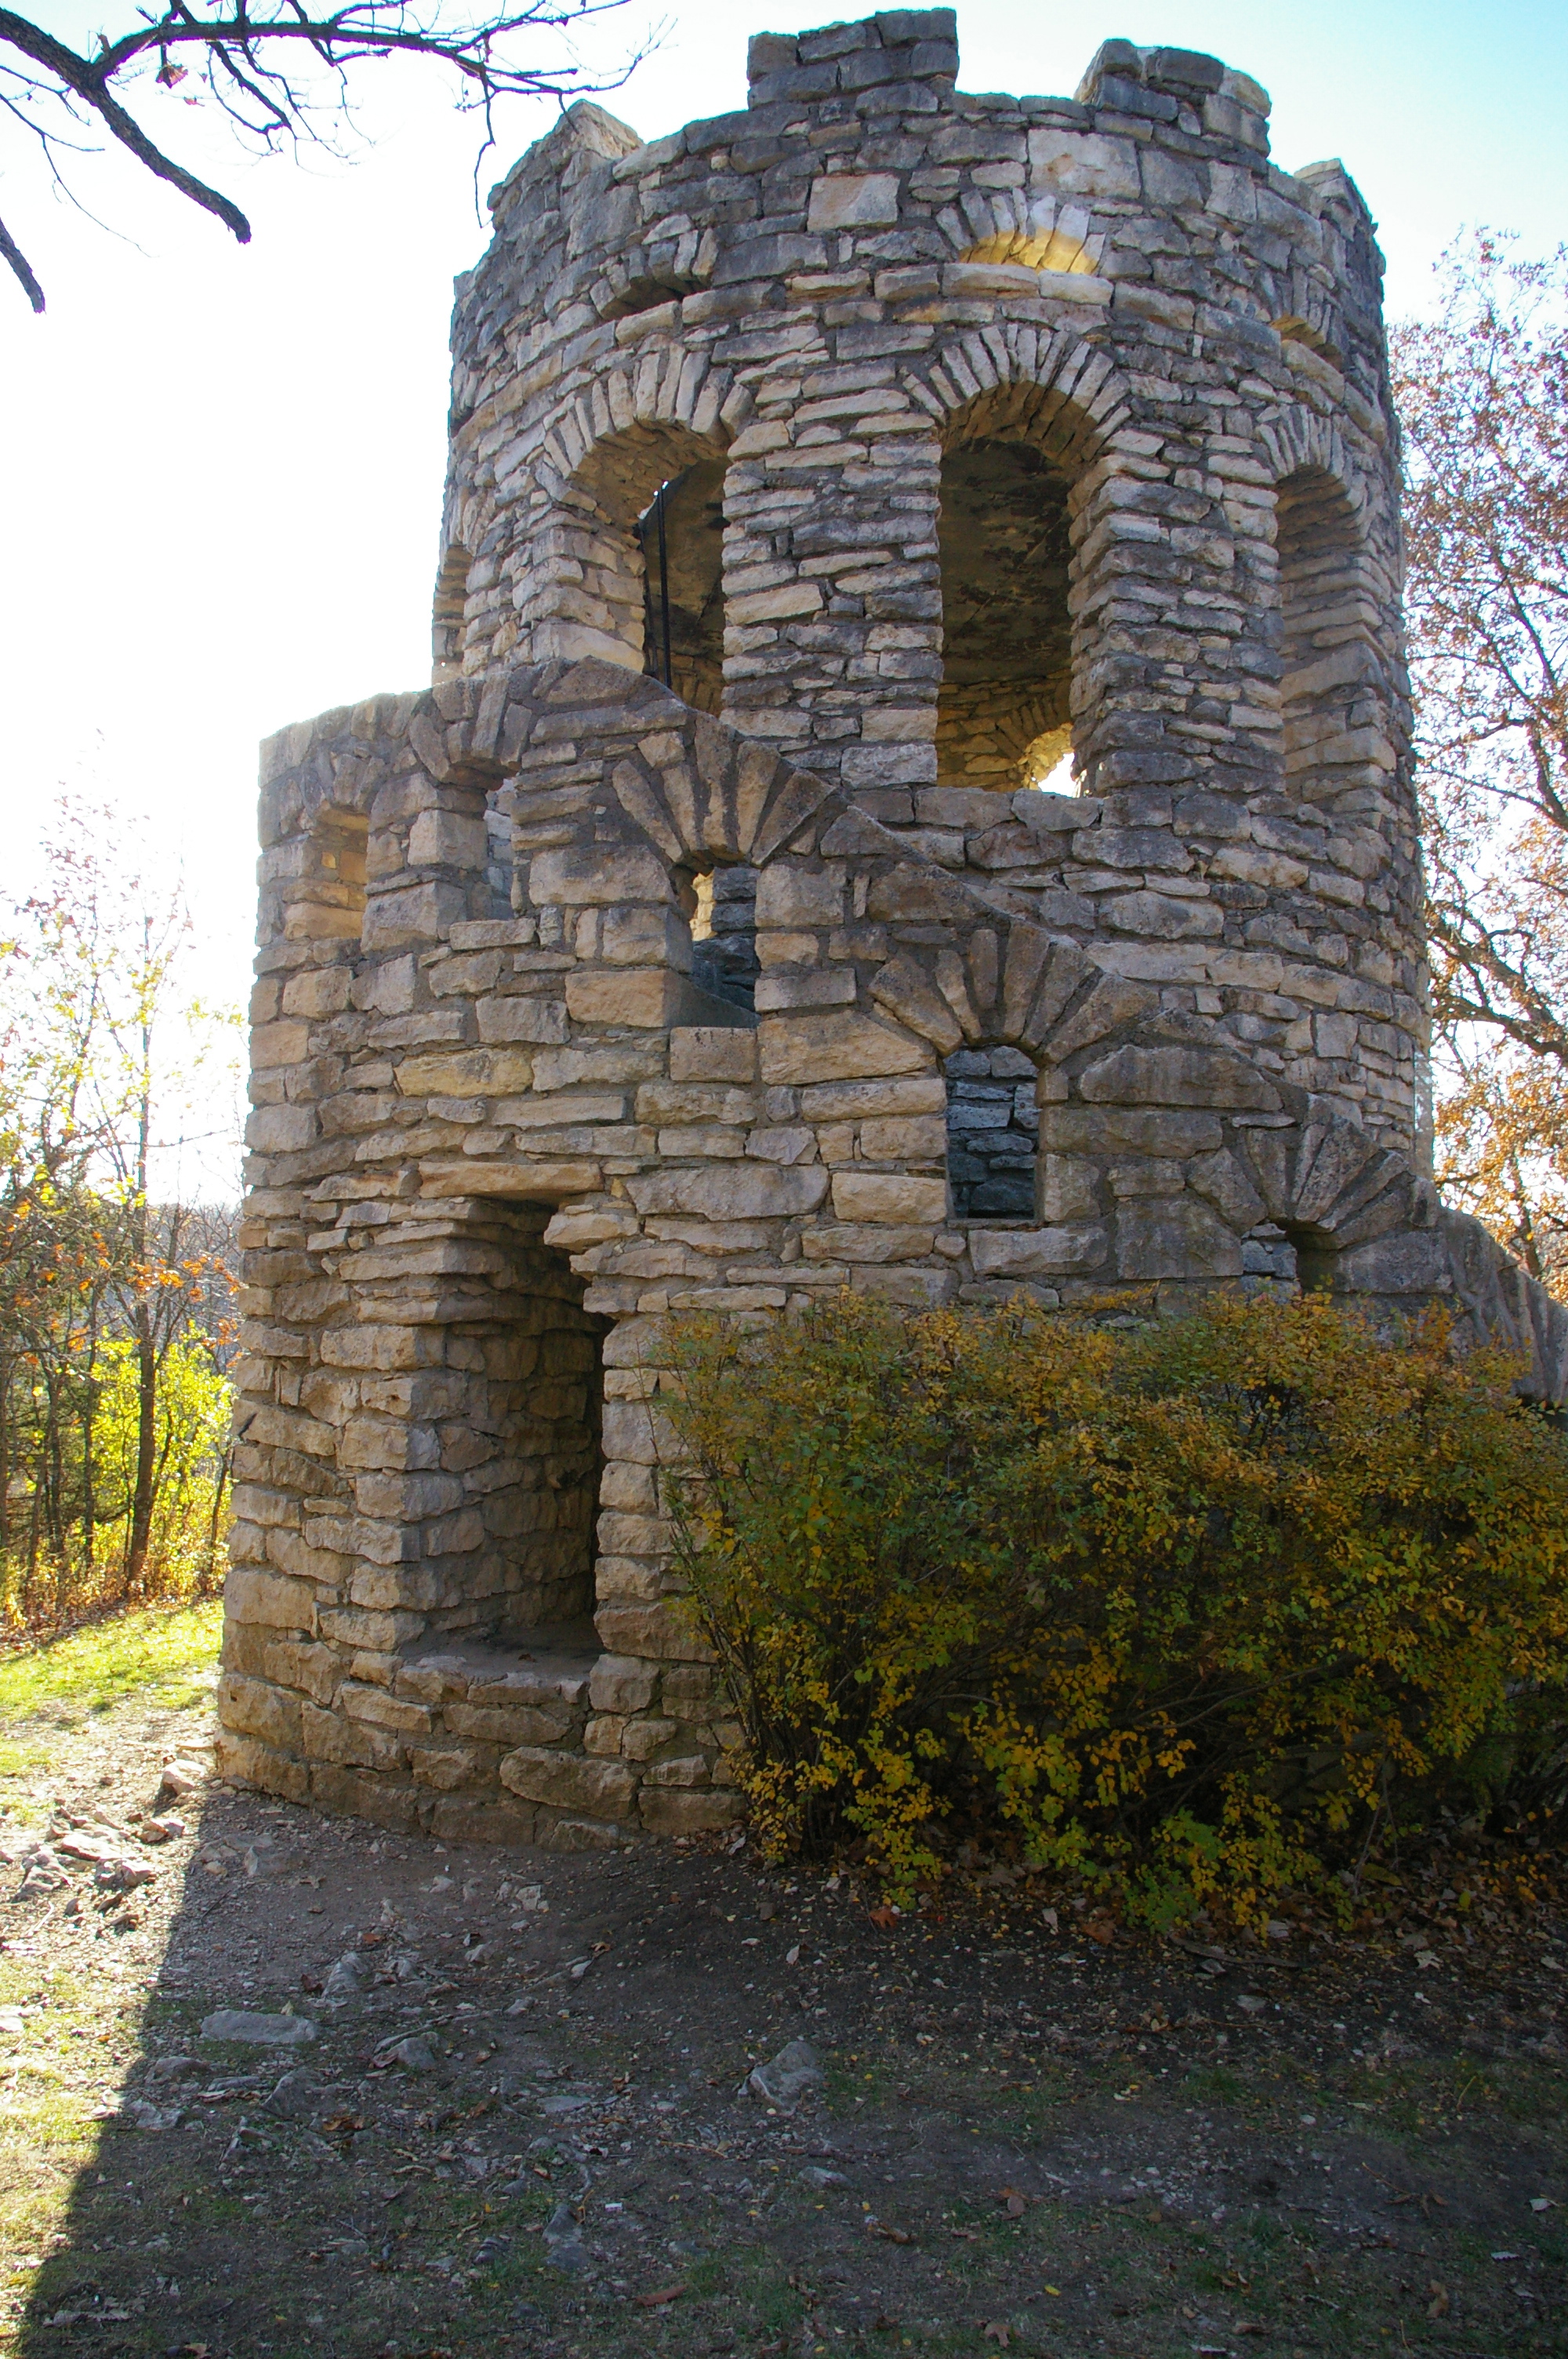 Stone tower called Clark Tower in Winterset City Party in Winterset, Iowa